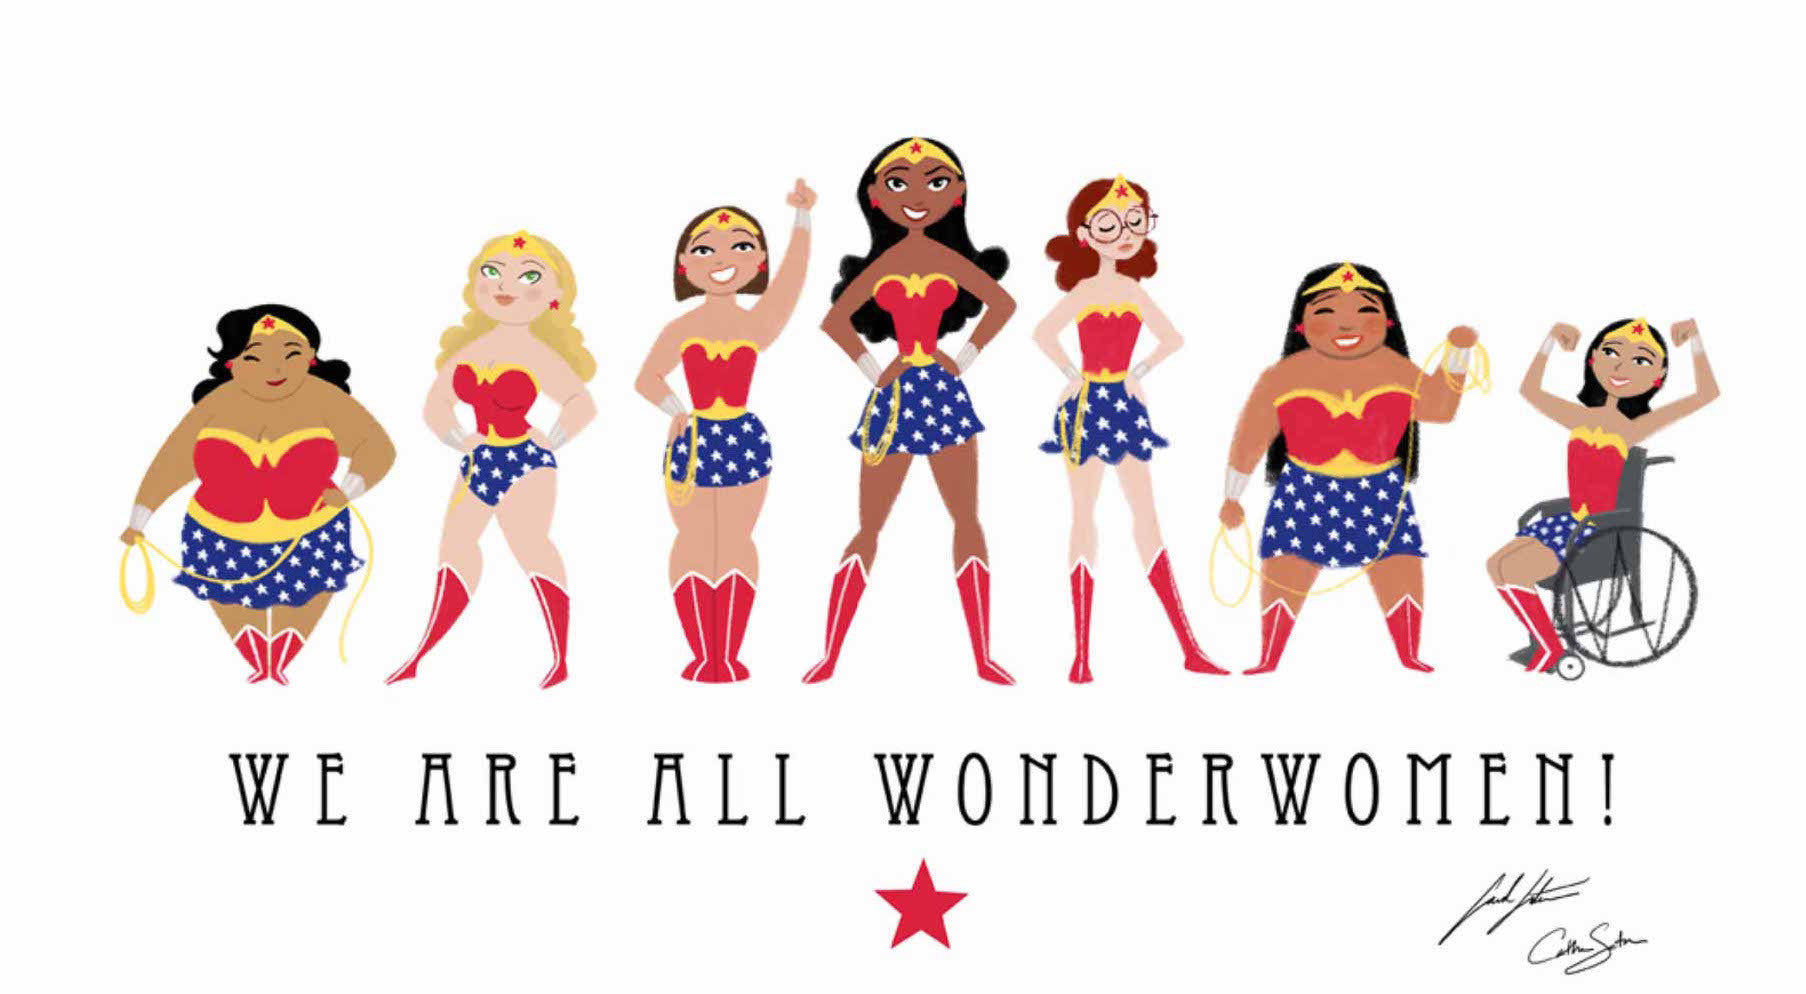 WE ARE ALL WONDERWOMAN